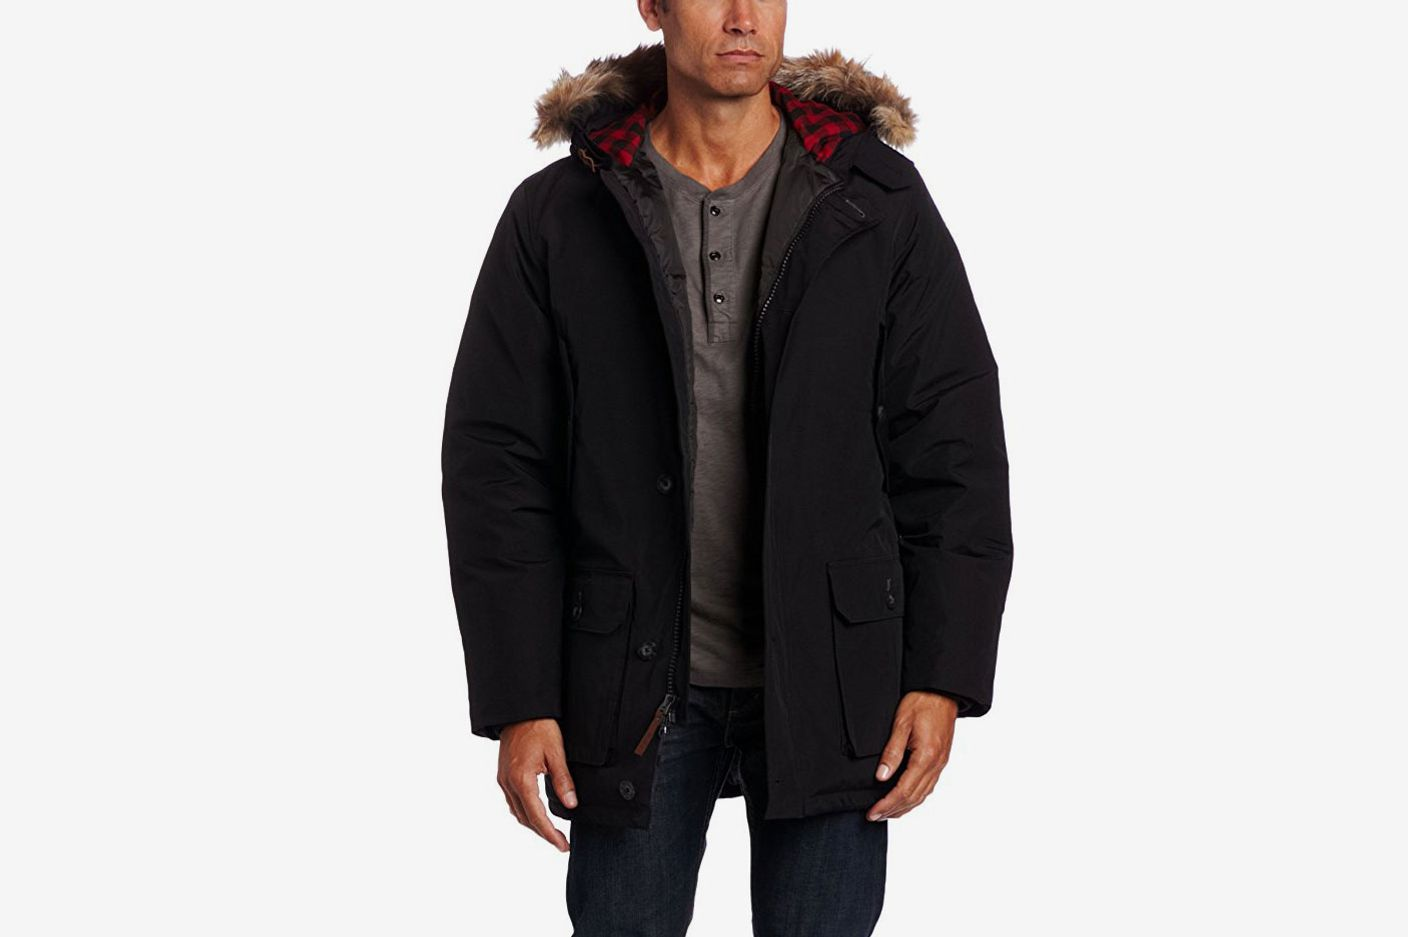 947b1205a59 The 11 Best Parkas on Amazon according to reviews